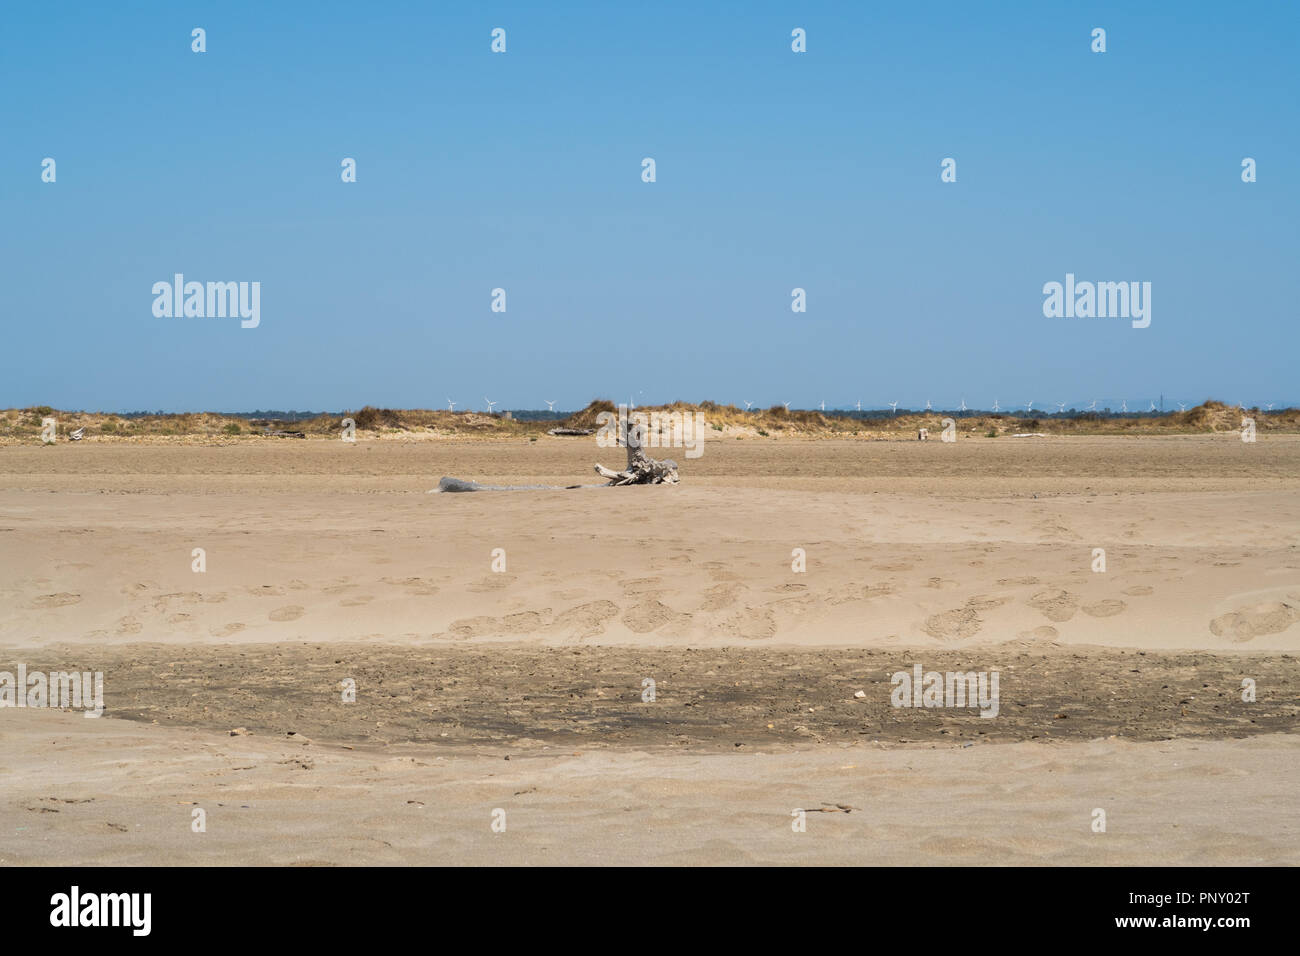 Beach in Provence, France with dead tree trunk and wind wheels in the background. - Stock Image